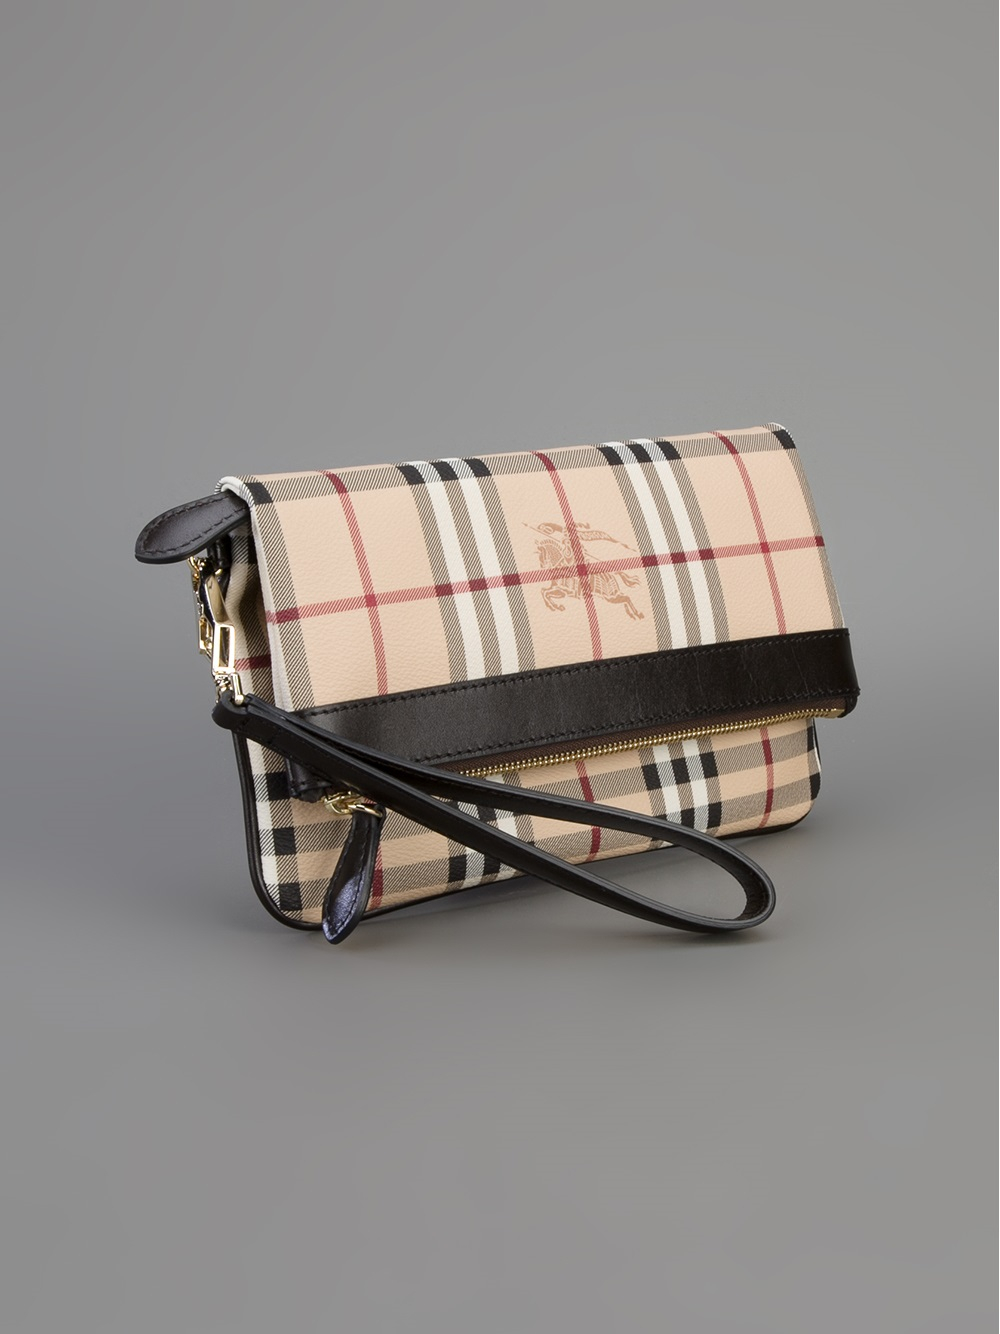 3b175a94f094 Lyst - Burberry Adeline Coated Clutch in Natural